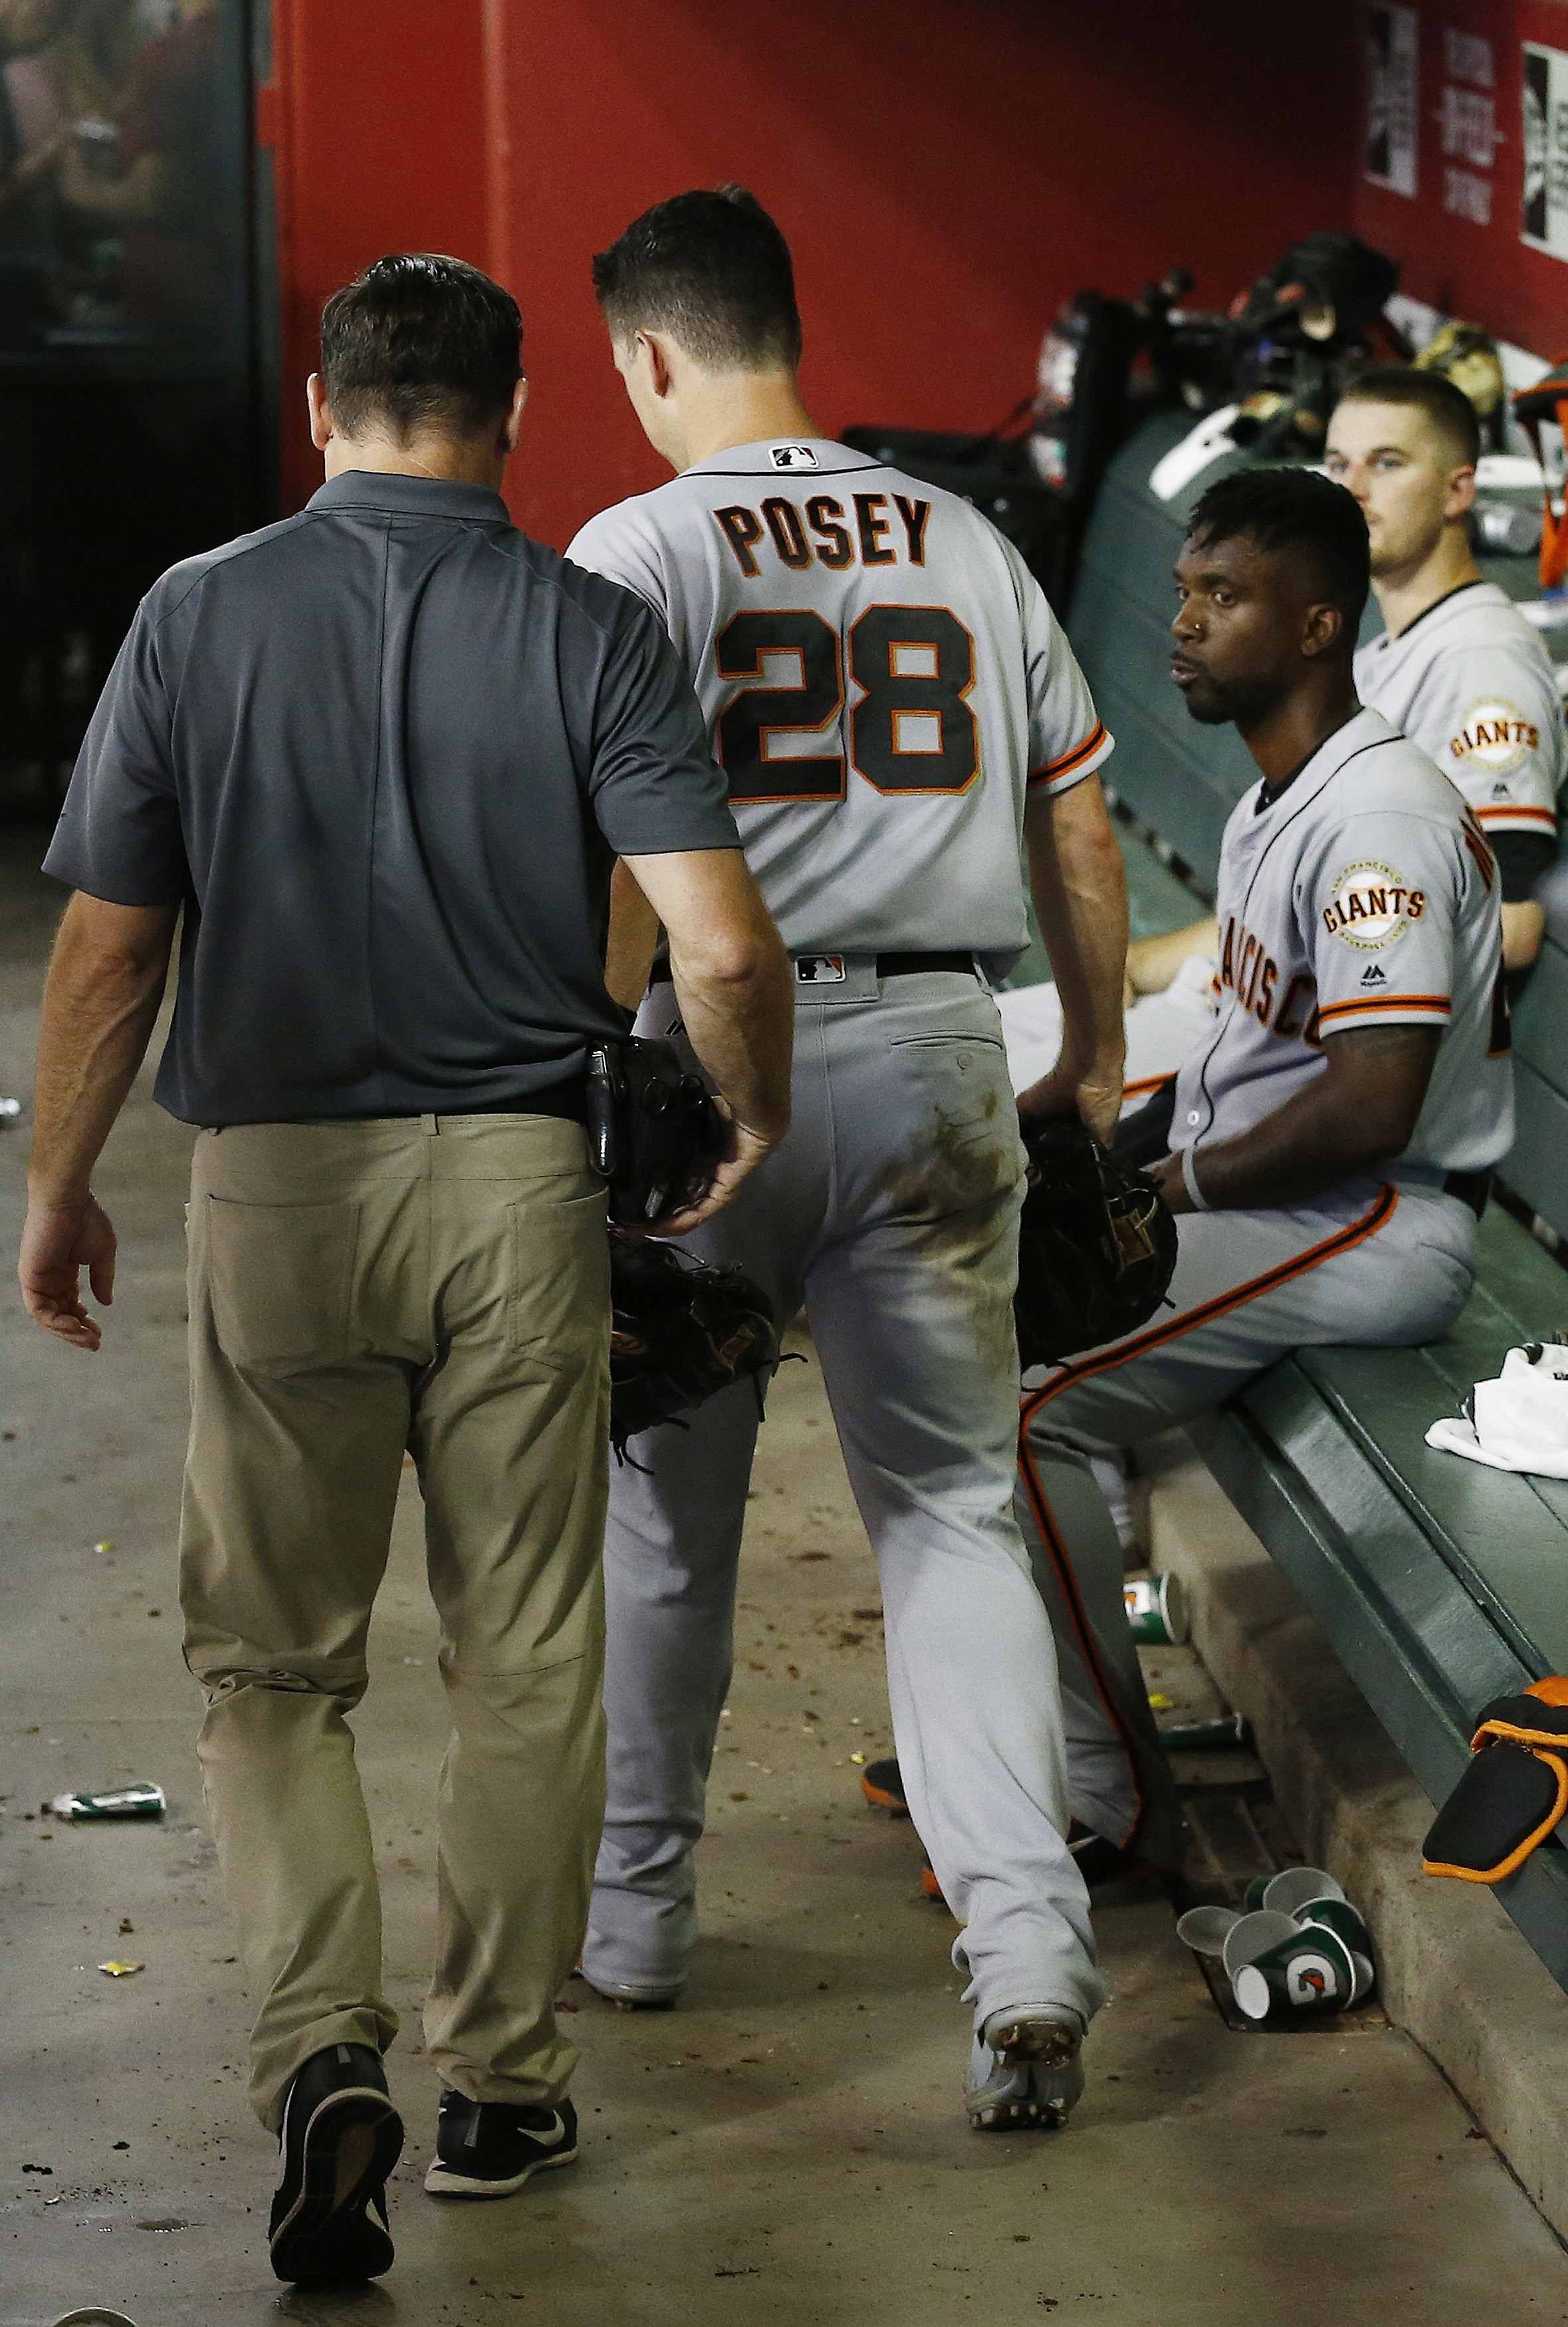 Posey leaves game inning after taking foul ball on mask